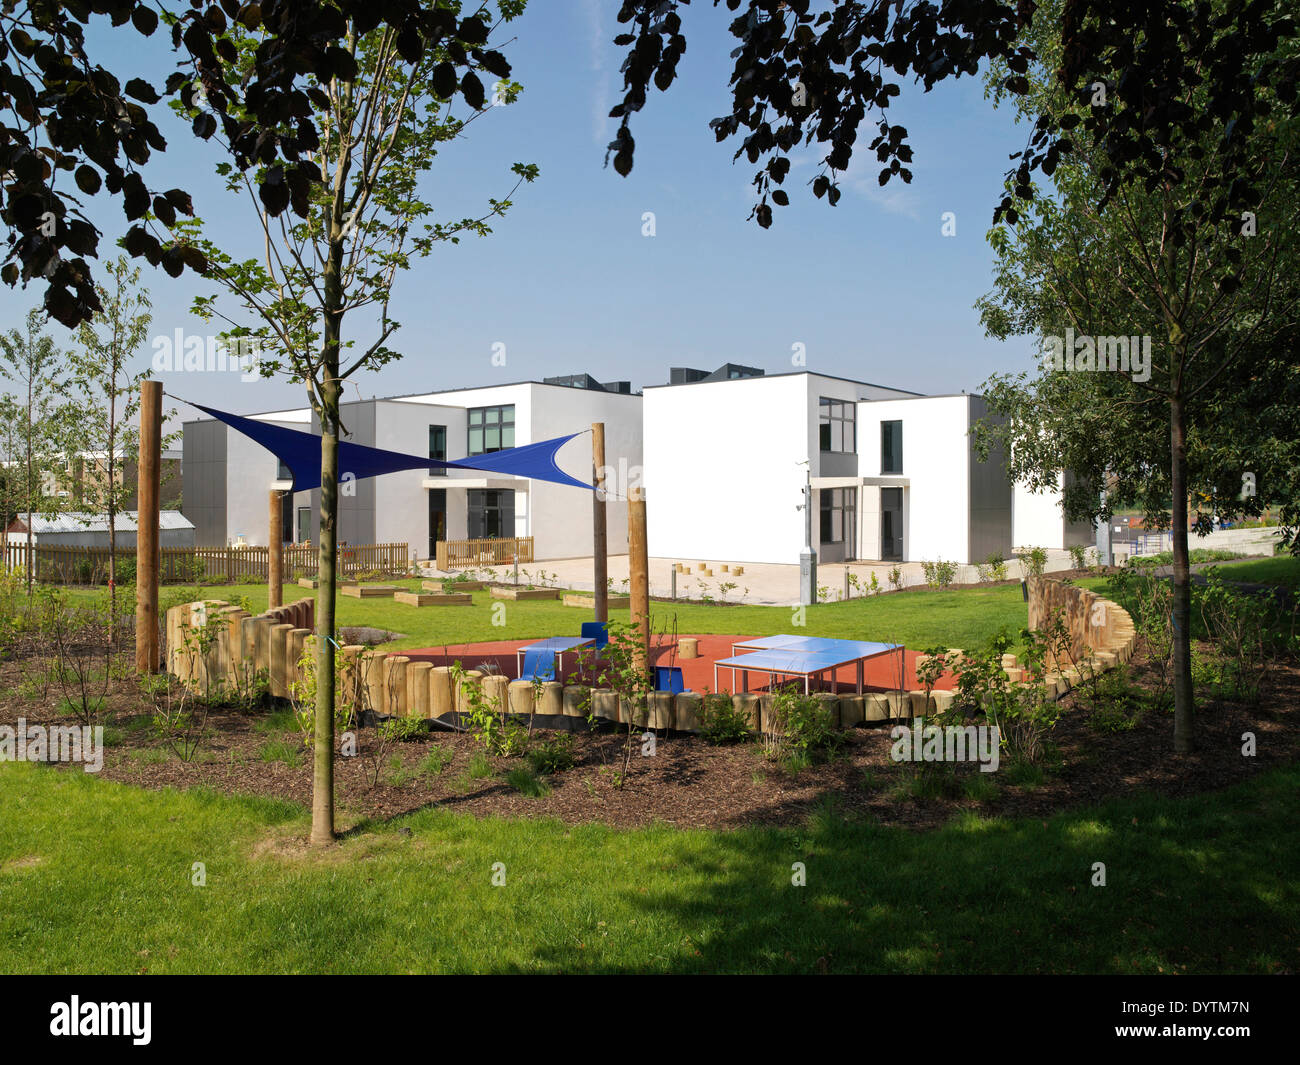 Play area in front of Havering Edwin Lambert Primary School Havering, London Stock Photo